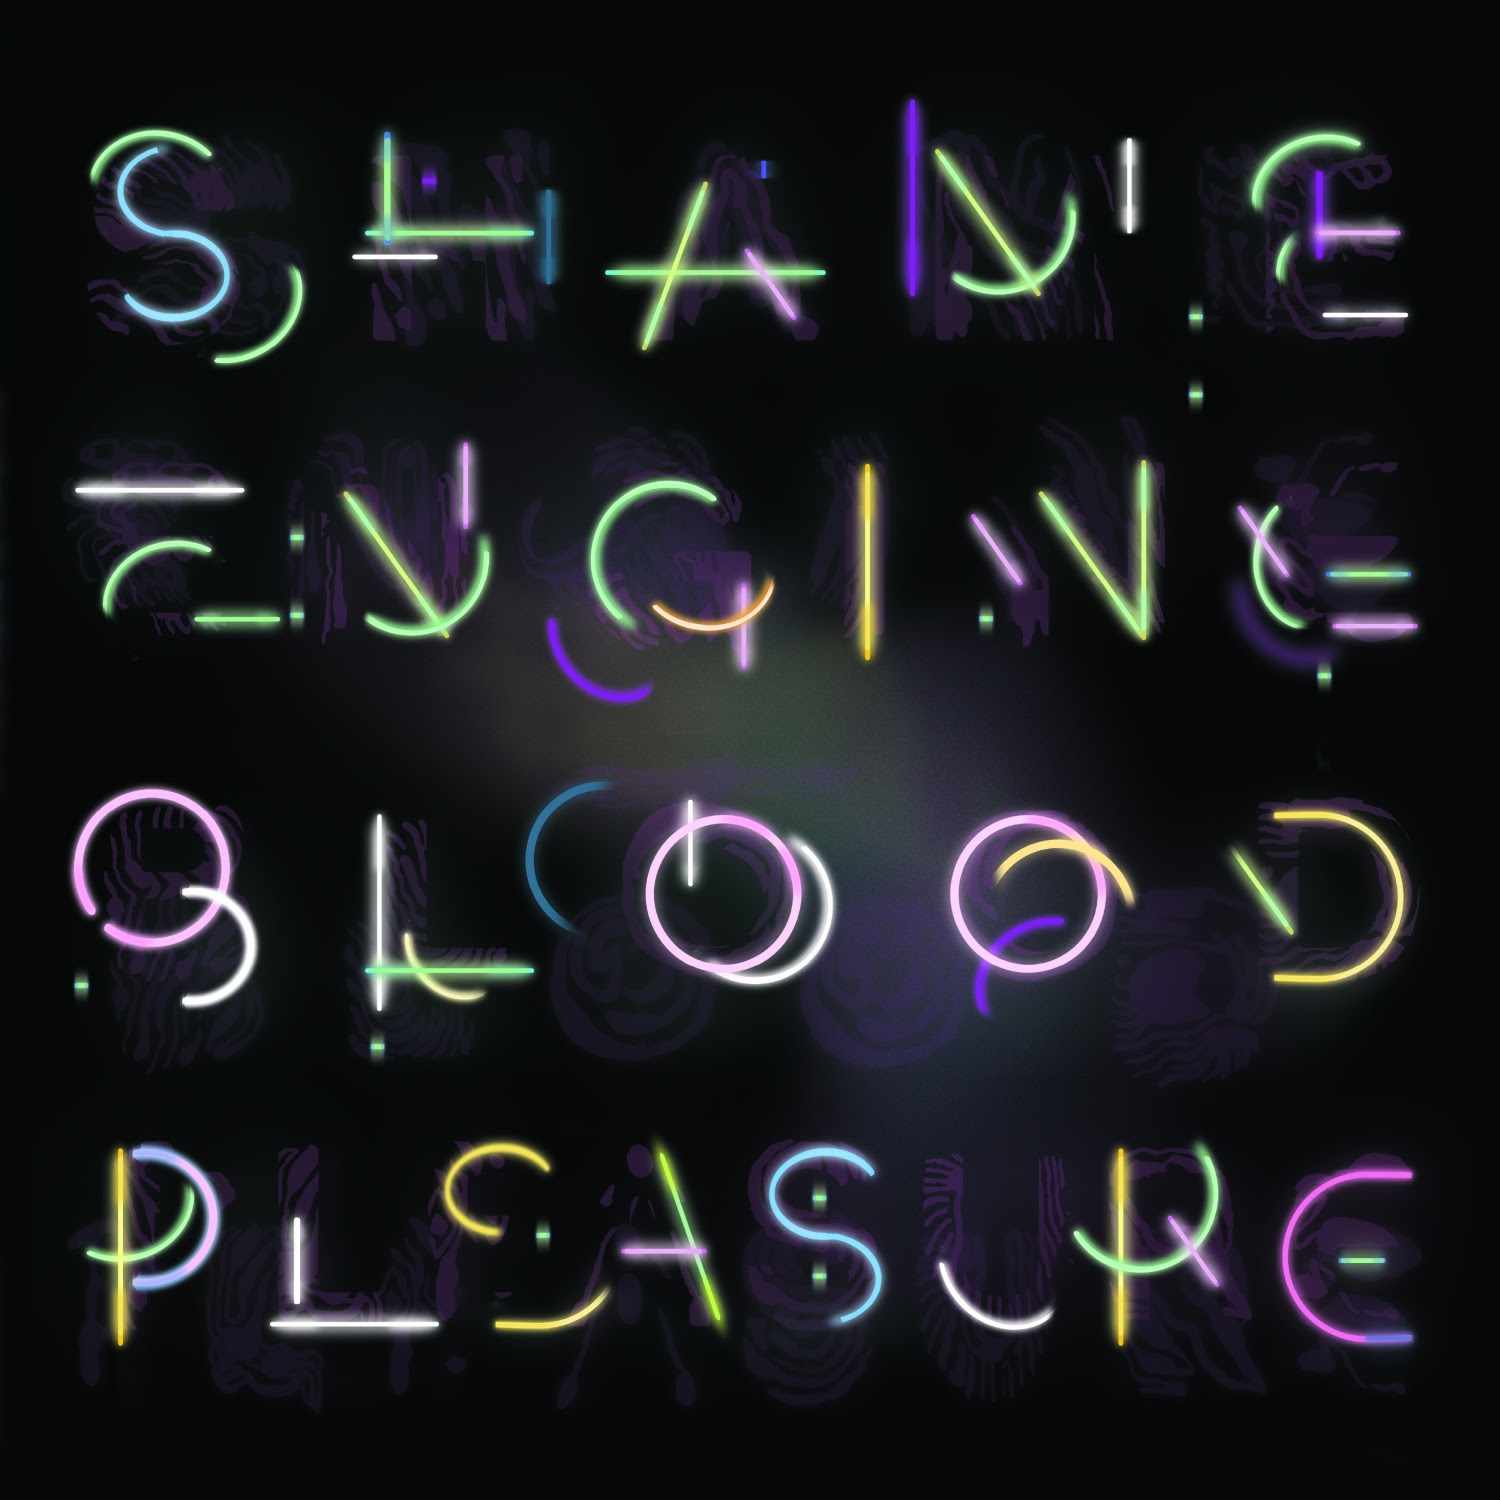 HEALTH&BEAUTY have announced their new album, Shame Engine / Blood Pleasure, will be available on November 22, via Wichita Recordings